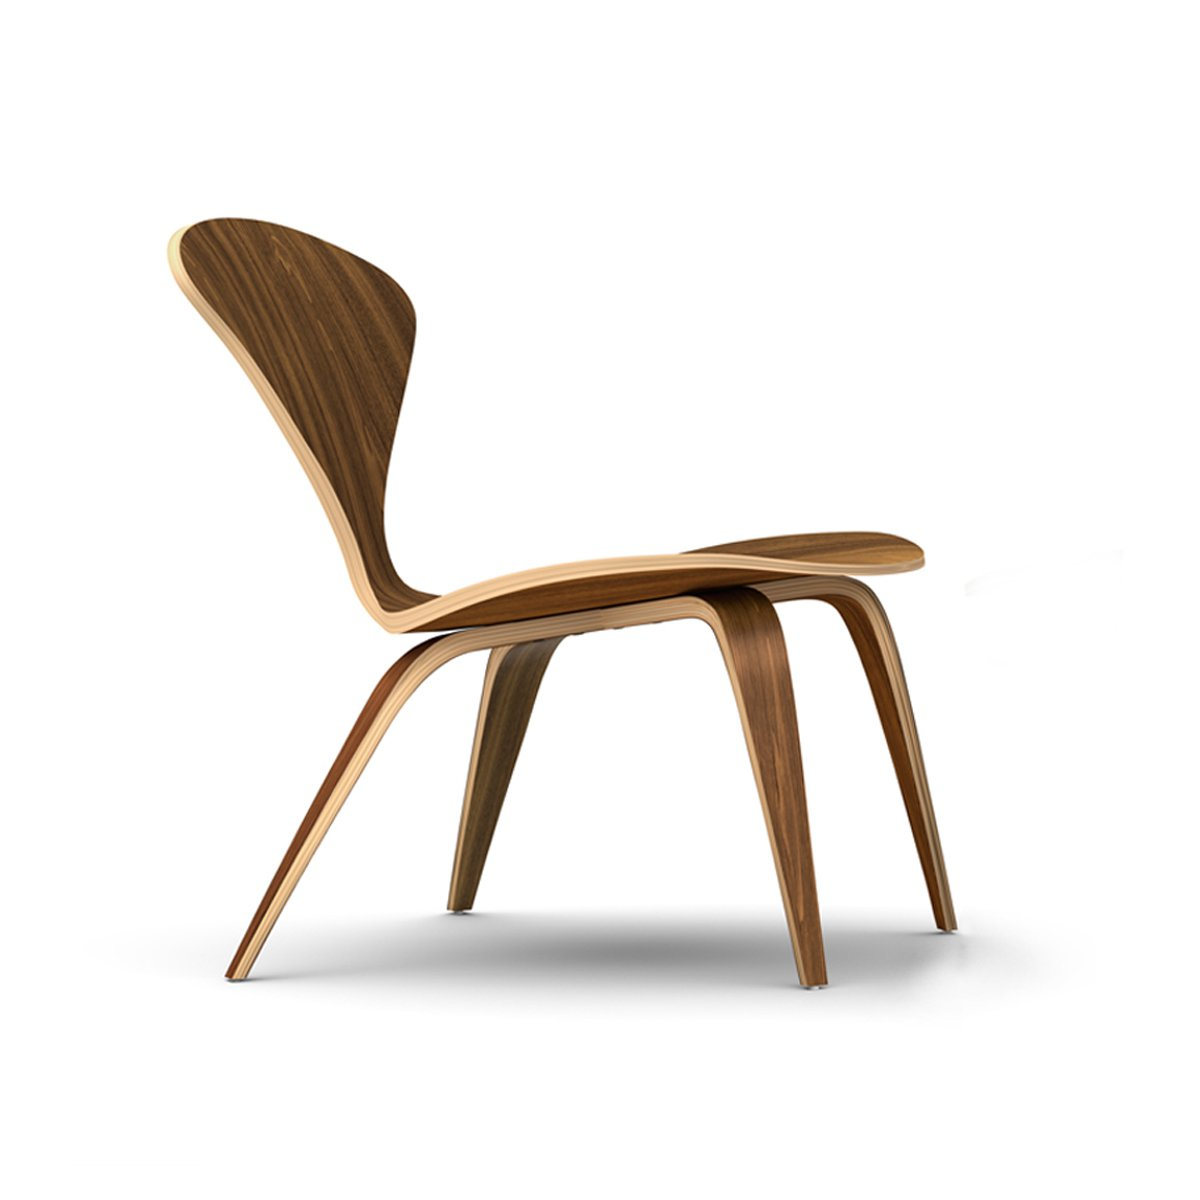 A similar design to the Lounge Arm Chair, the Lounge Side Chair has a welcoming shape that evokes Norman Cherner's 1958 design.  100+ Best Modern Seating Designs from Reviving Classics with The Cherner Chair Company